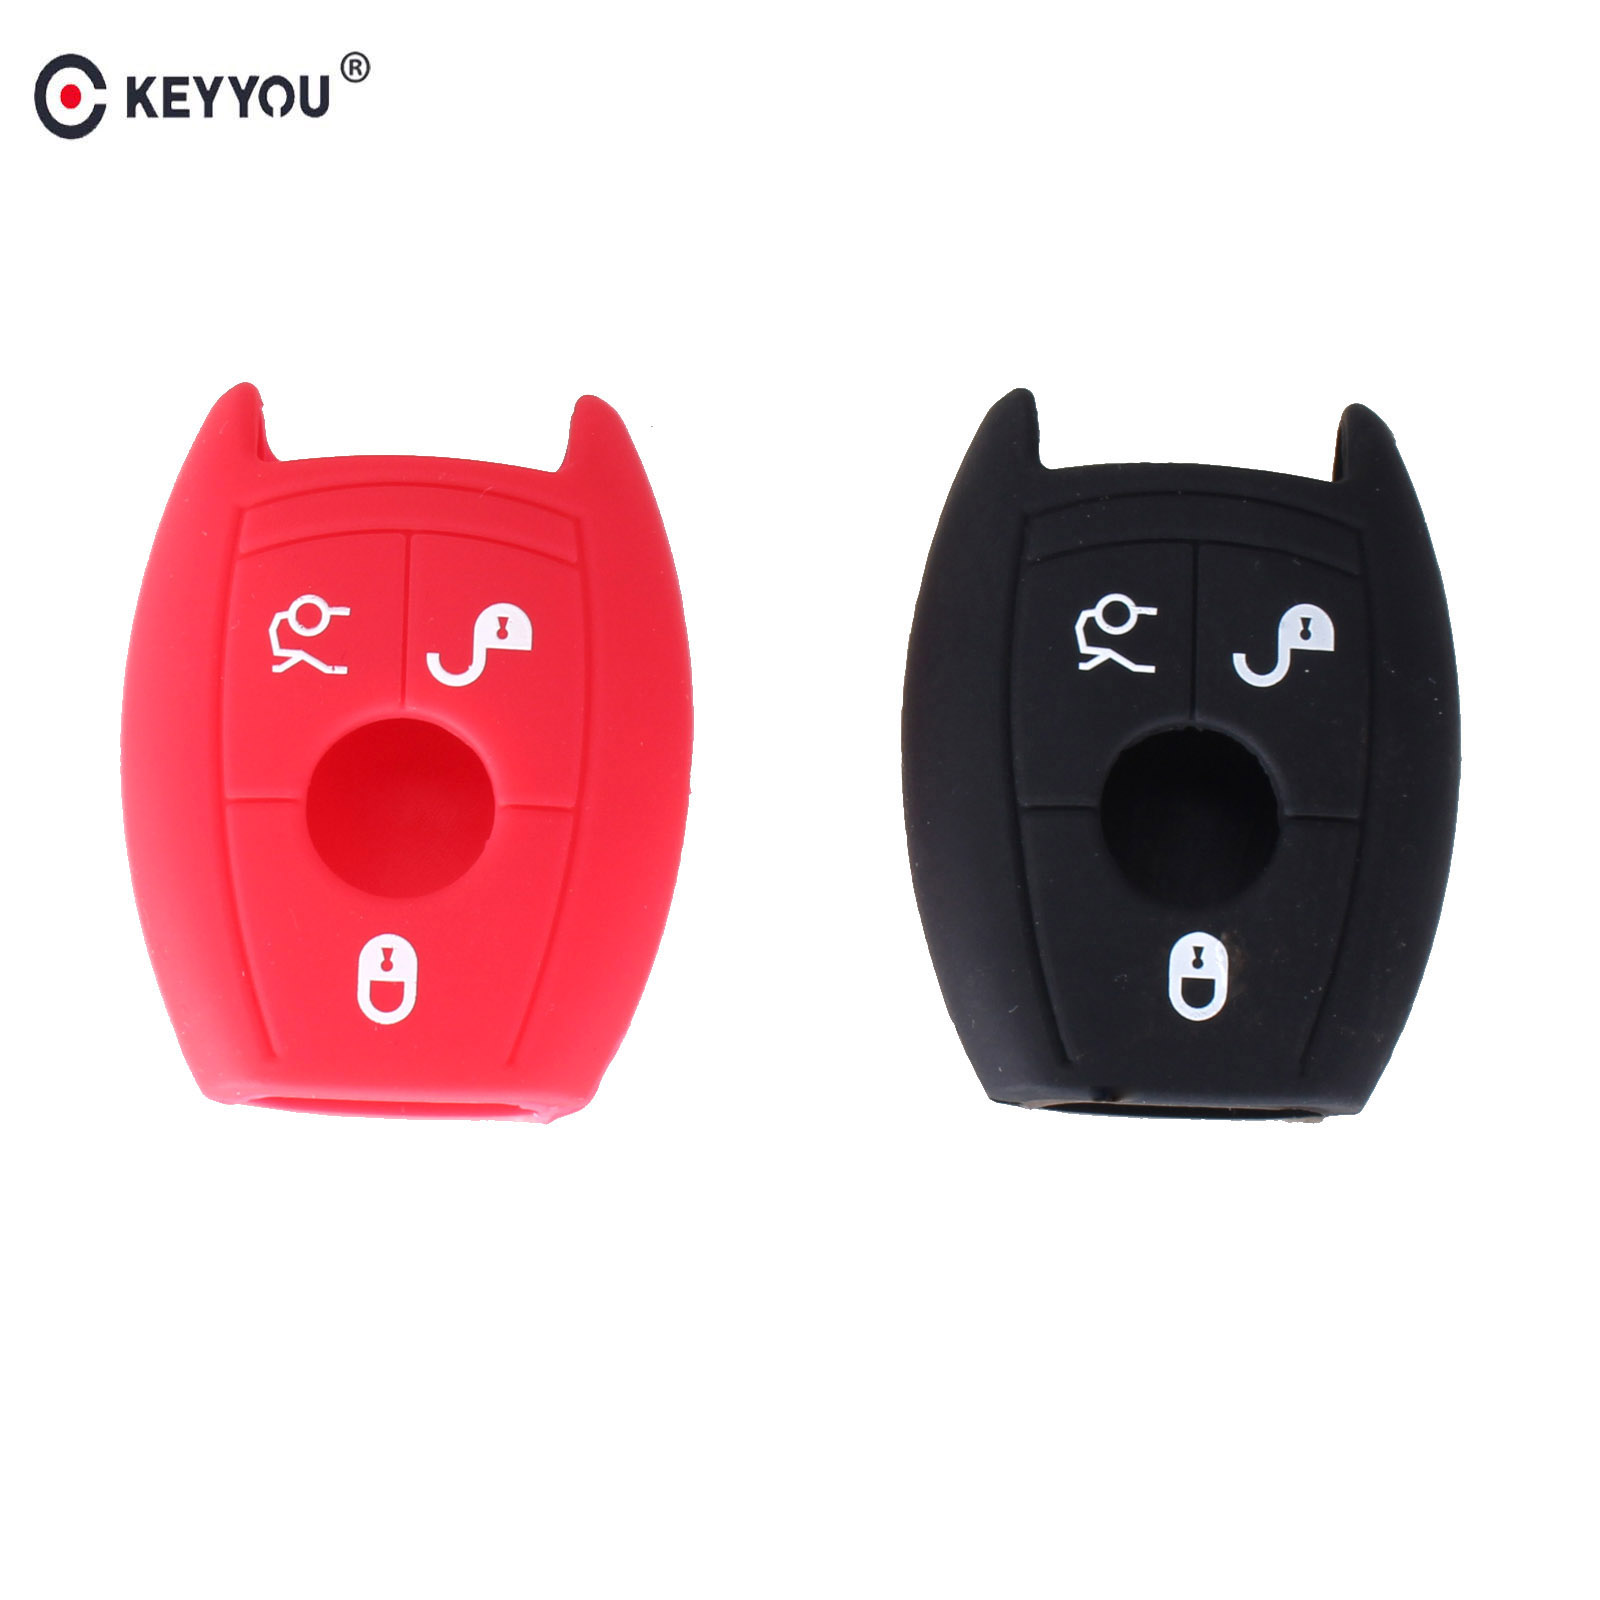 KEYYOU 3 Buttons Silicone Cover Shell Key Fob Bag For MERCEDES BENZ C CL CLK E G GL M S SLK CLASS Remote Key Case